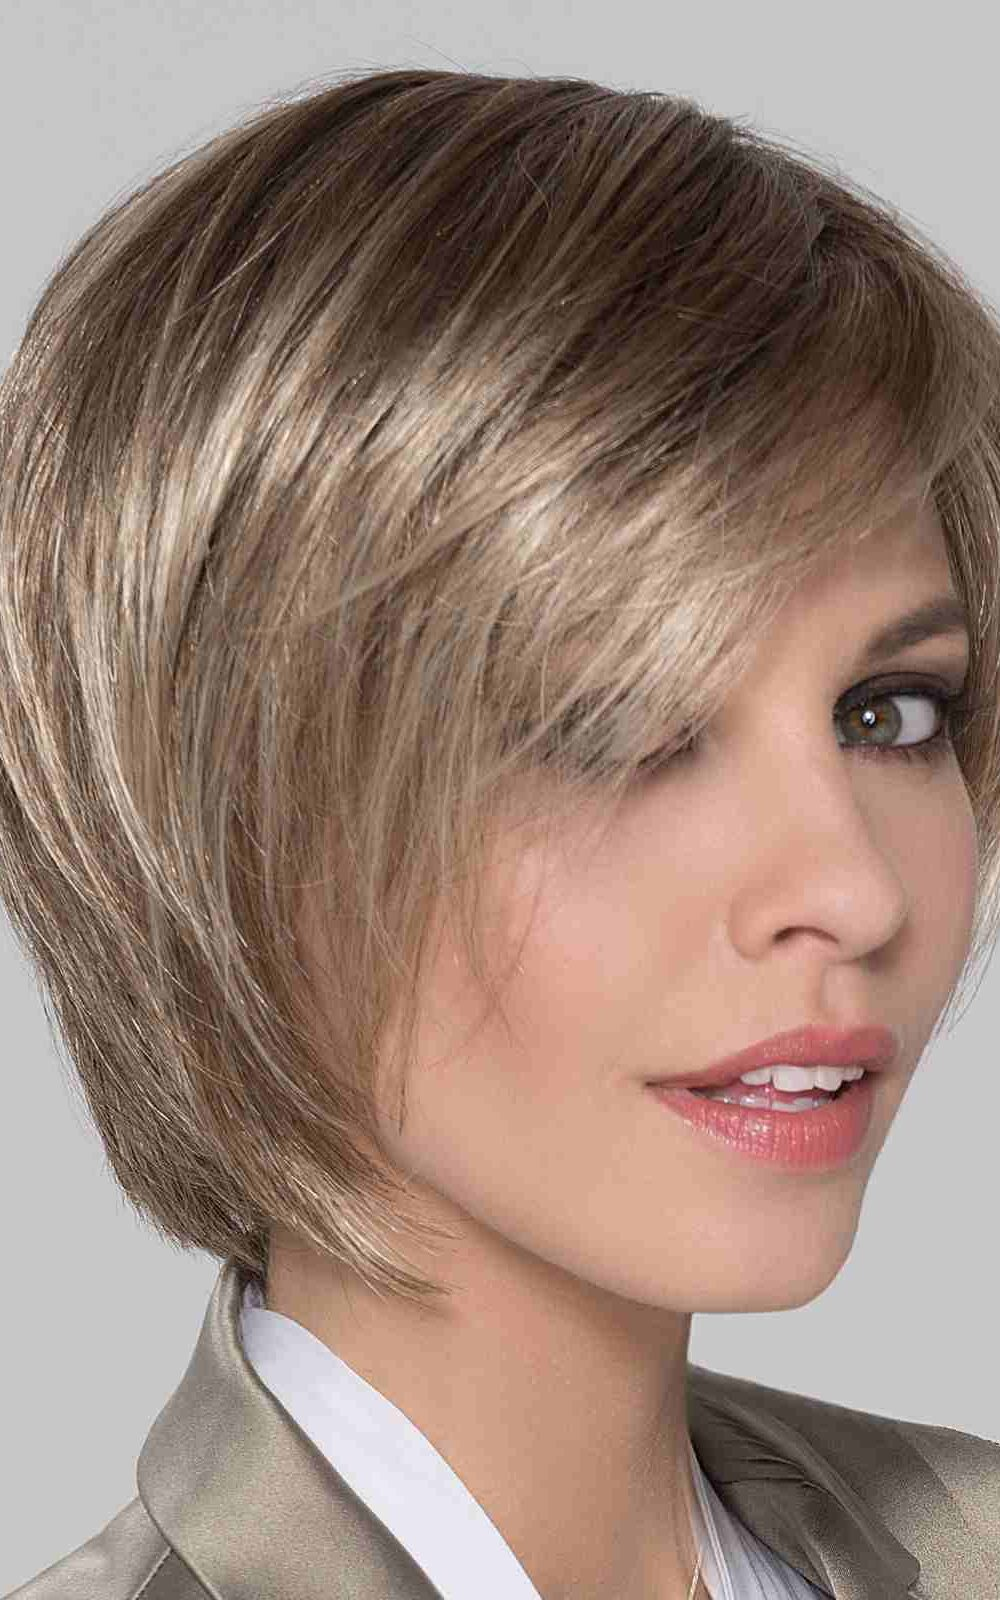 The Shine Comfort wig is constructed to the highest standard for luxury and comfort. A completely Hand Tied construction which is soft, soft and then even more soft.